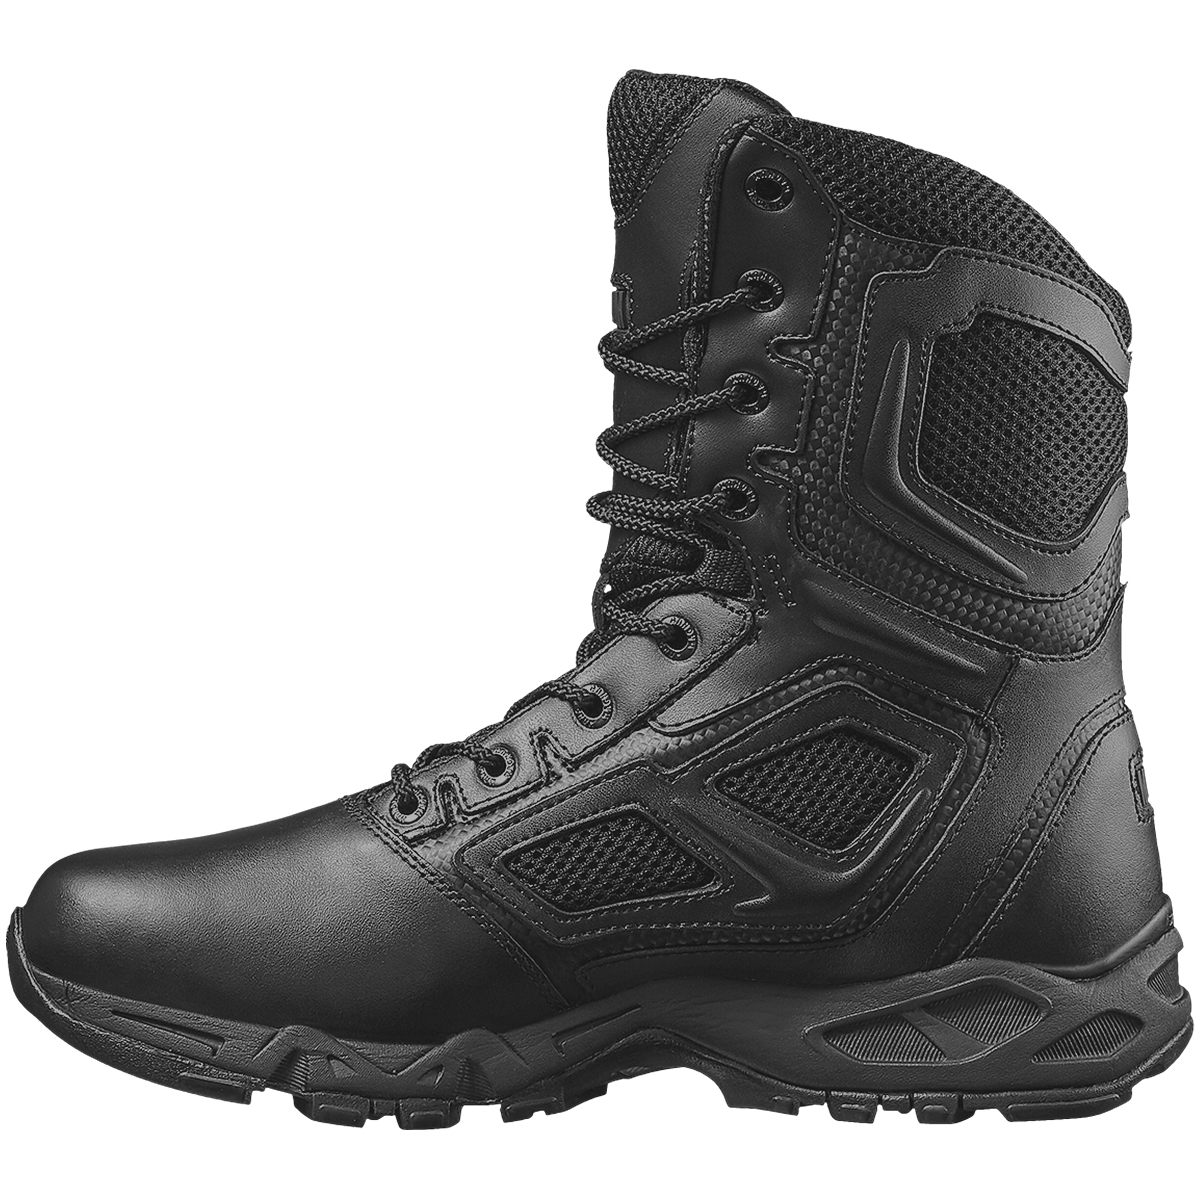 Magnum Elite Spider 8 0 Boots Army Tactical Patrol Police